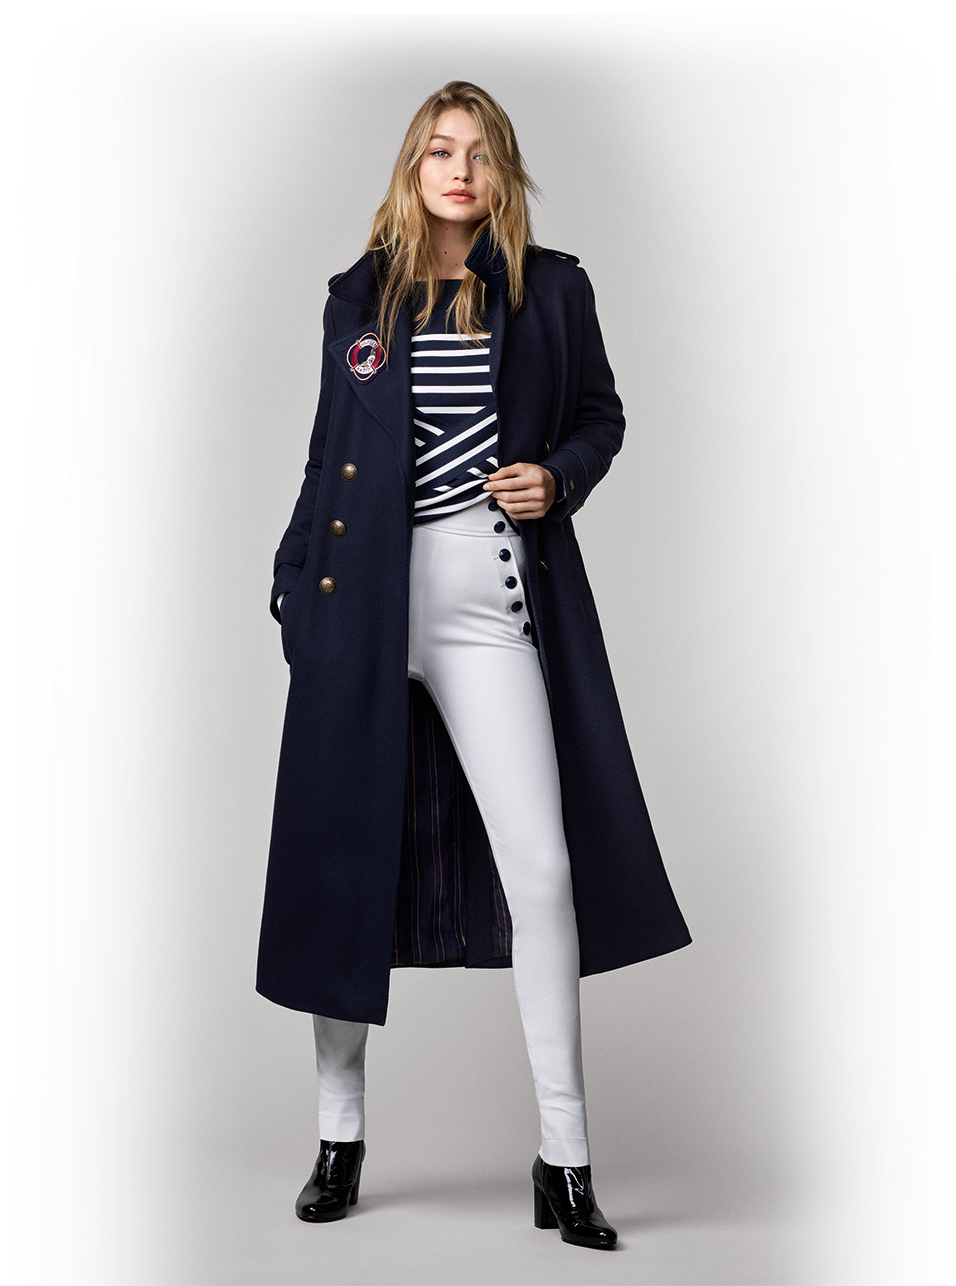 TOMMYxGIGI for Women   Tommy Hilfiger   (16-17)Street Style (autumn ... 646f3d796f